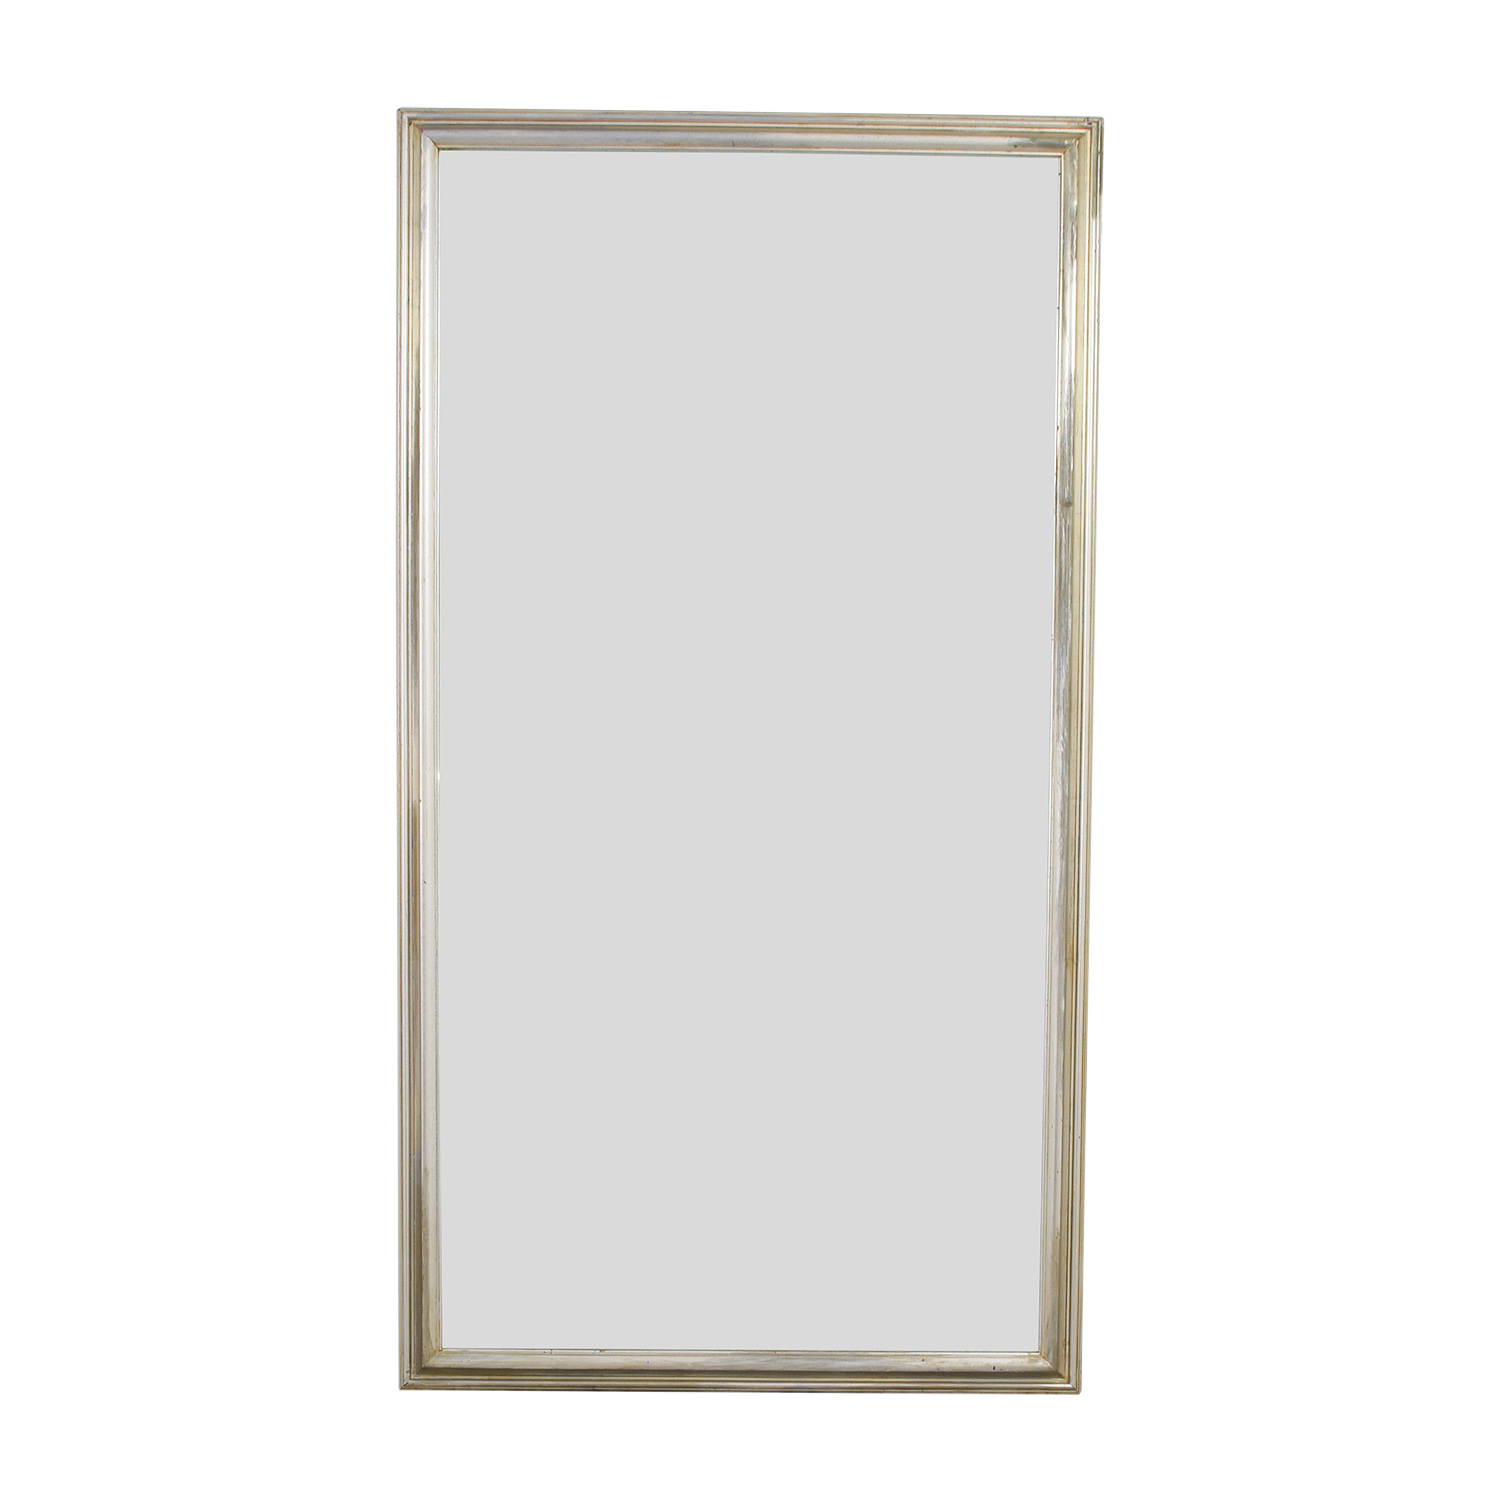 Silver Leaf Frame Wall Mirror used